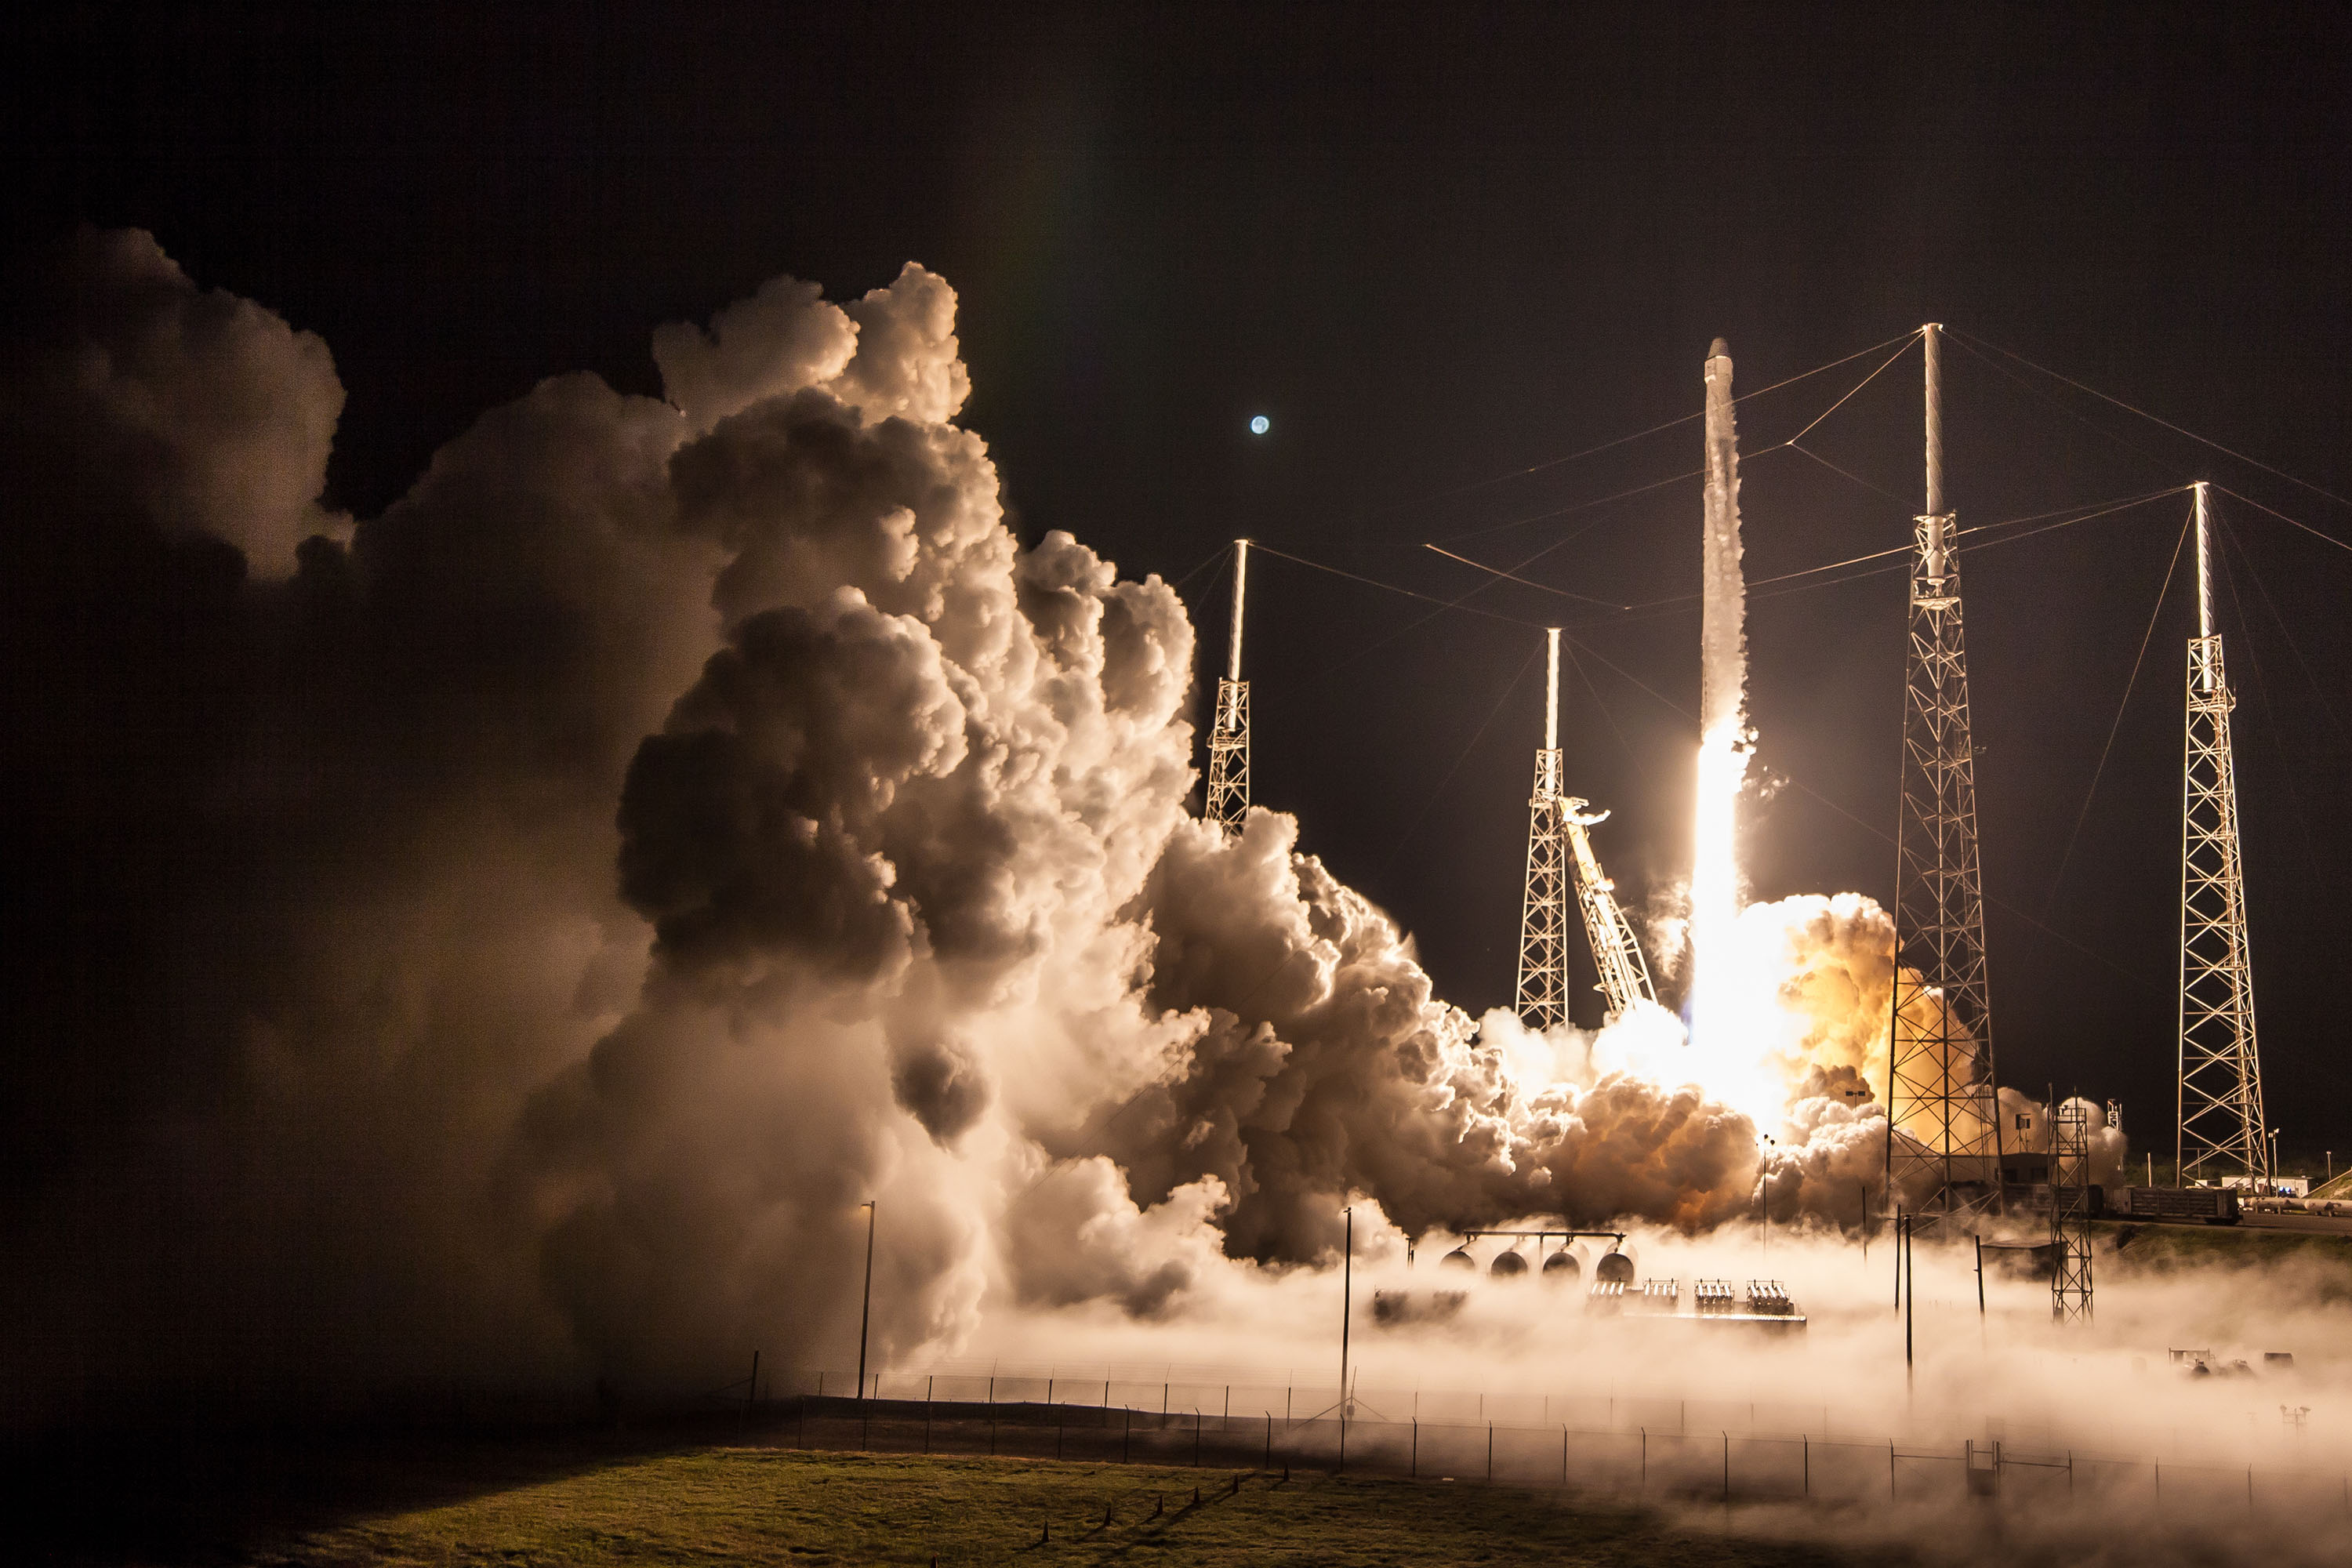 CRS-15 B1045 launch (SpaceX) 3